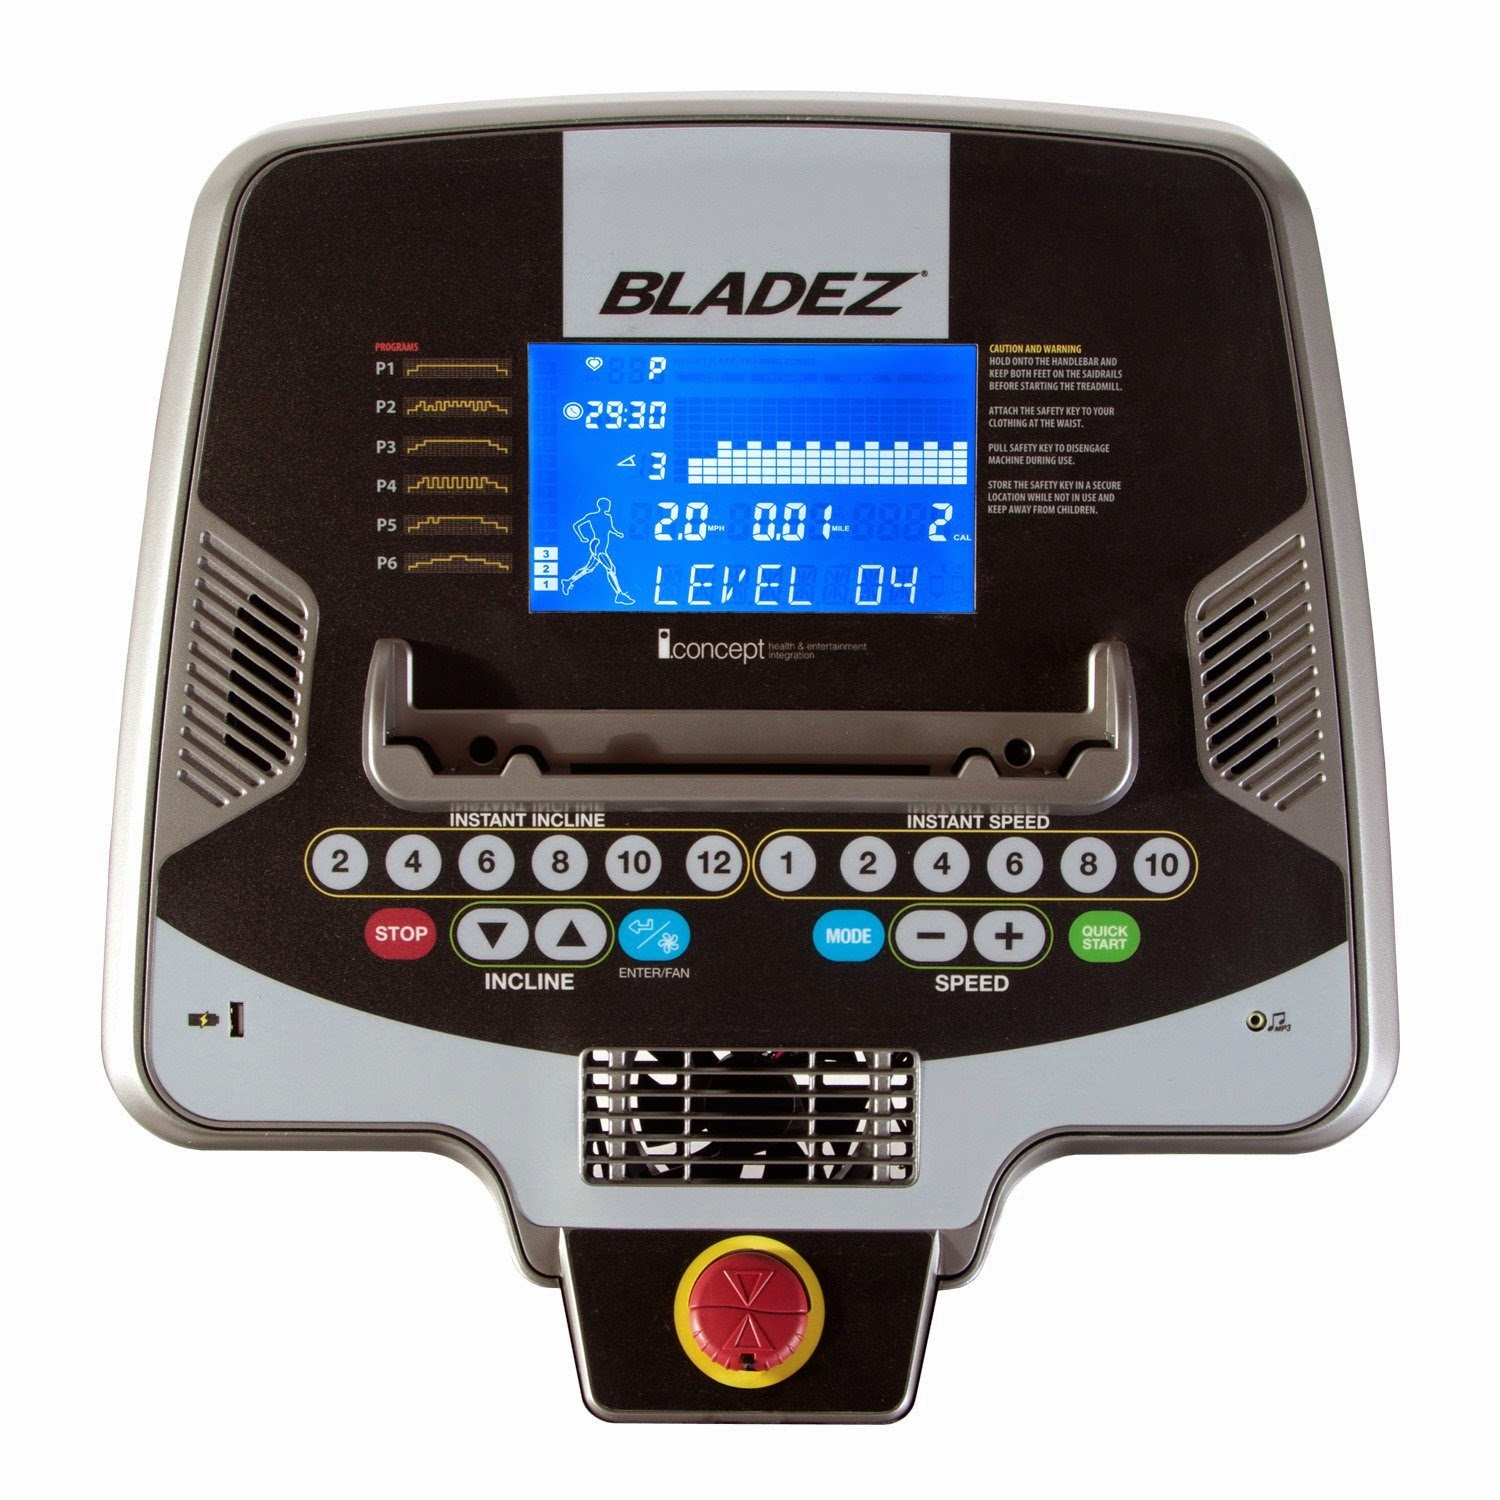 Bladez T500i/T300i console with iConcept bluetooth technology for interactive training and entertainment